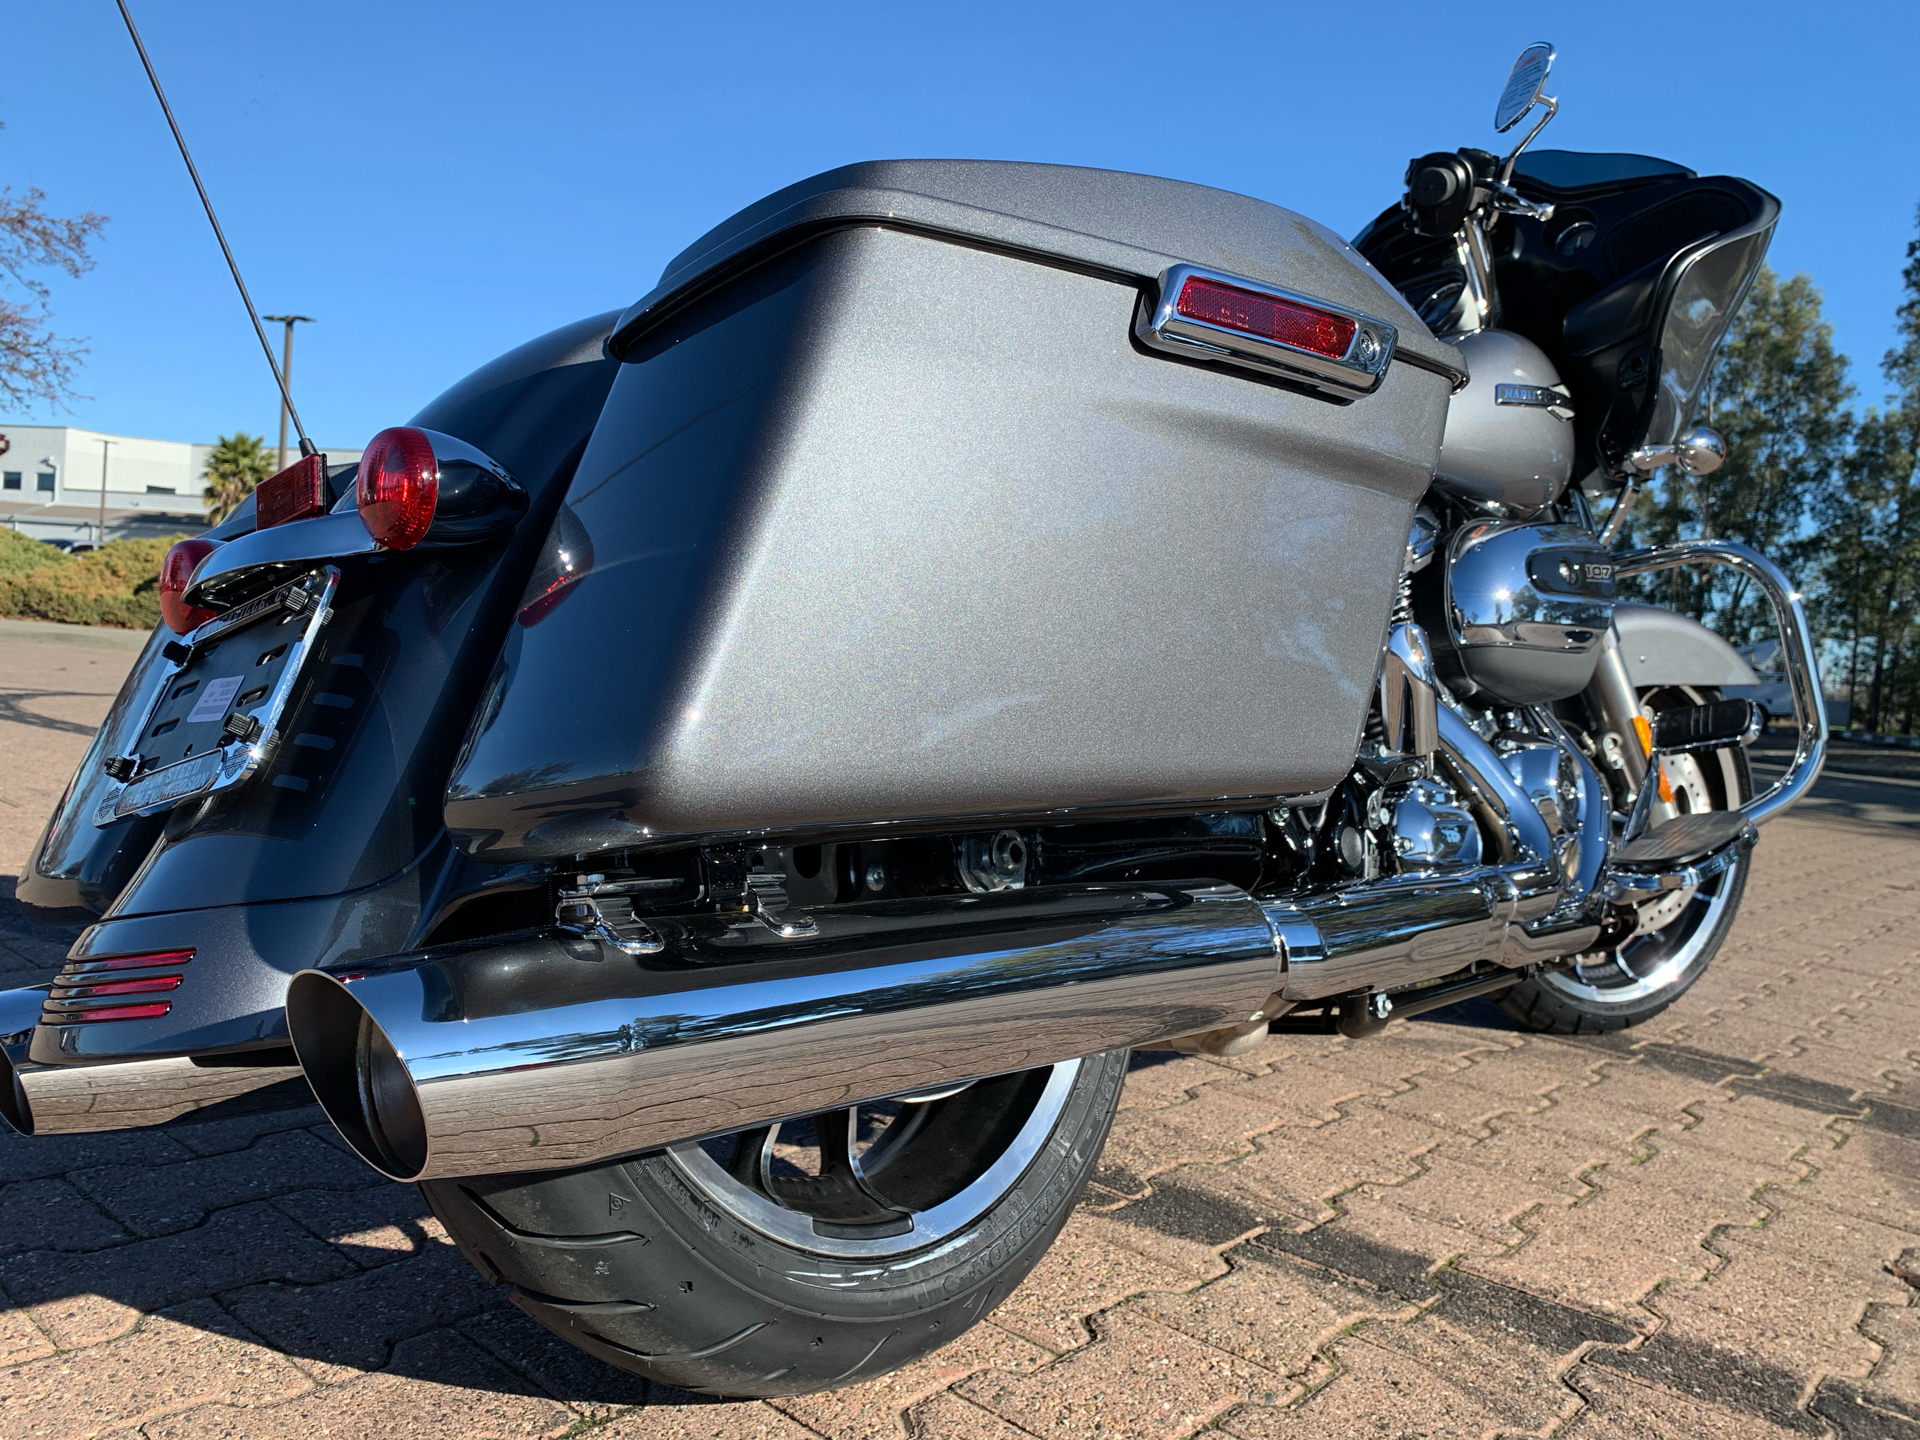 2021 Harley-Davidson Road Glide in Vacaville, California - Photo 12